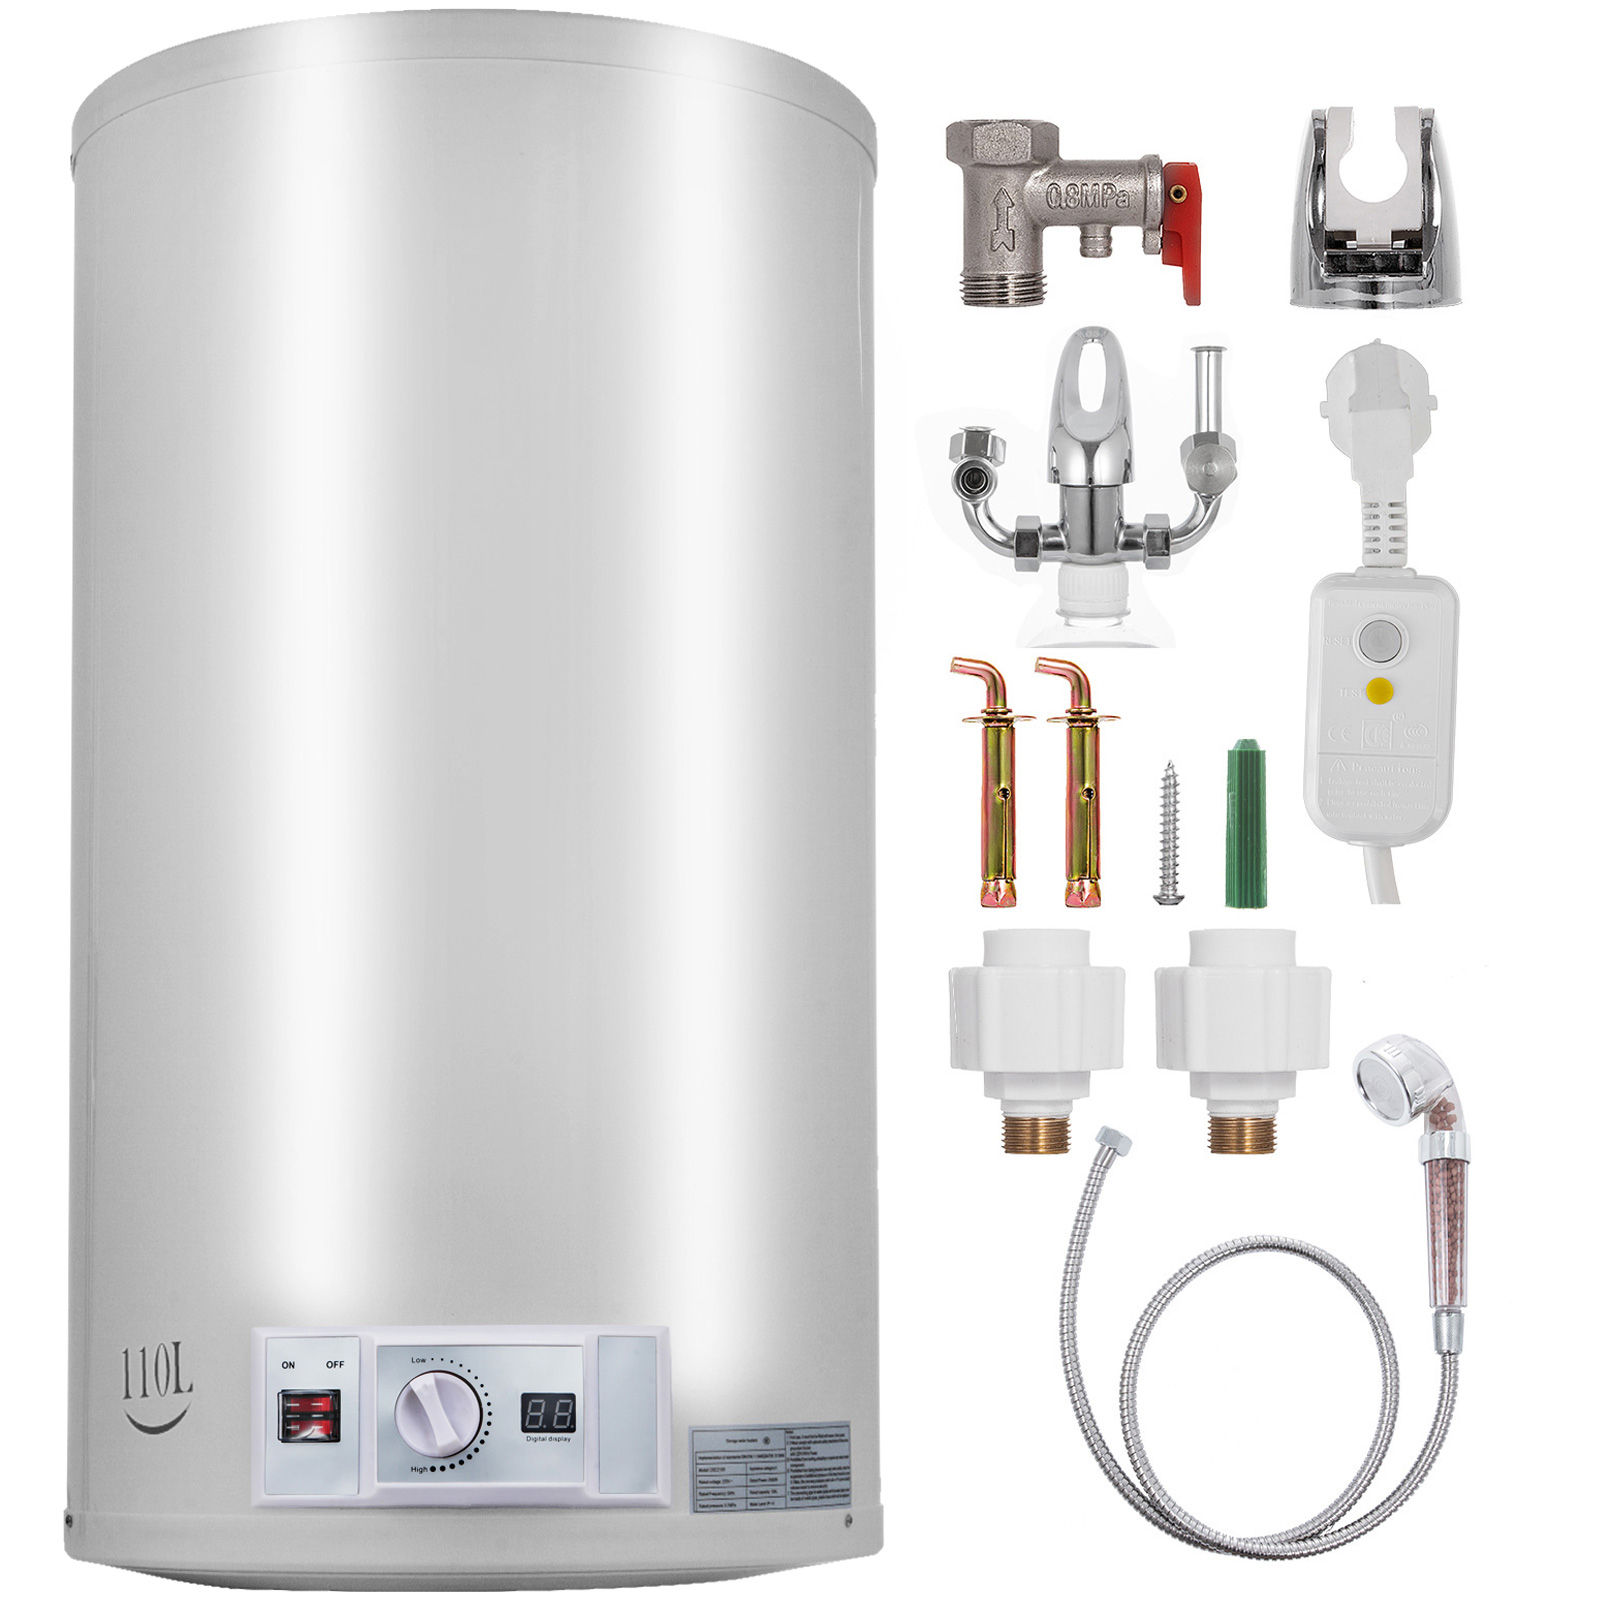 2KW 40-110L Electric HOT Water ...